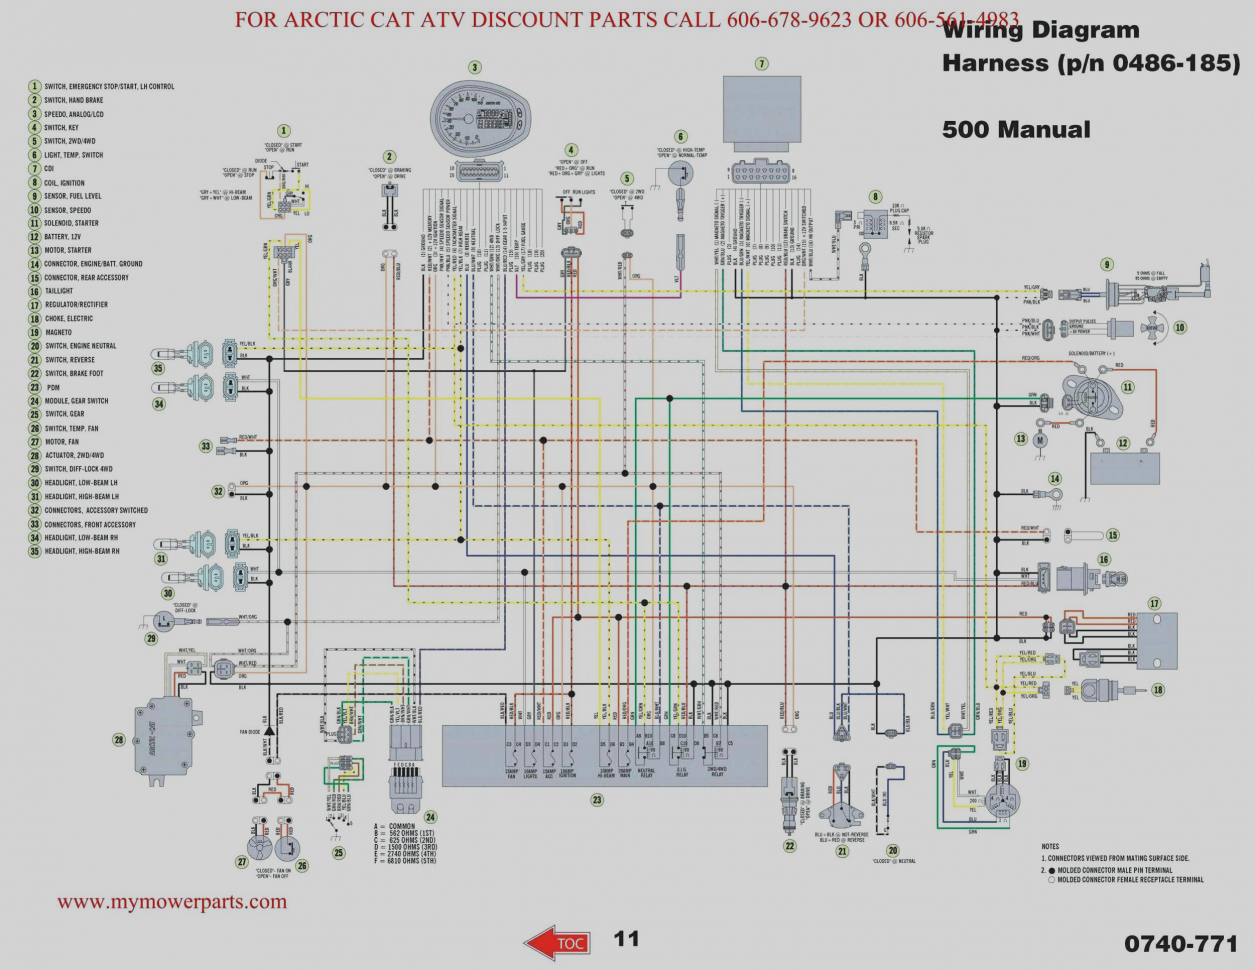 Diagram Ford Ranger Wiring Diagram Full Version Hd Quality Wiring Diagram Mate Diagram Notresite Mariage Fr